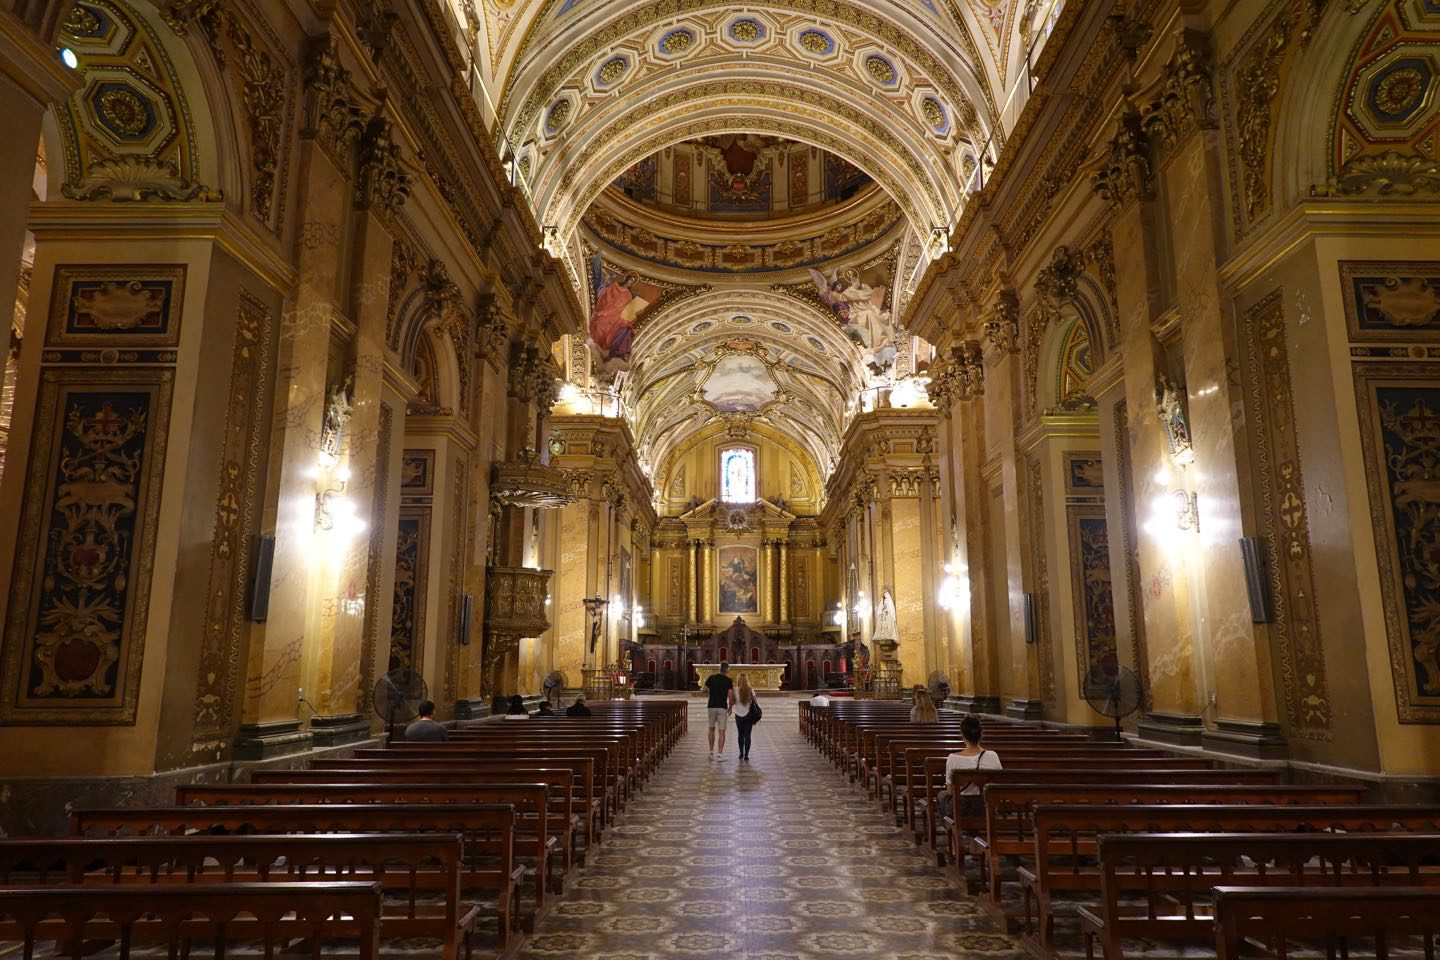 interior of the Cathedral of Cordoba